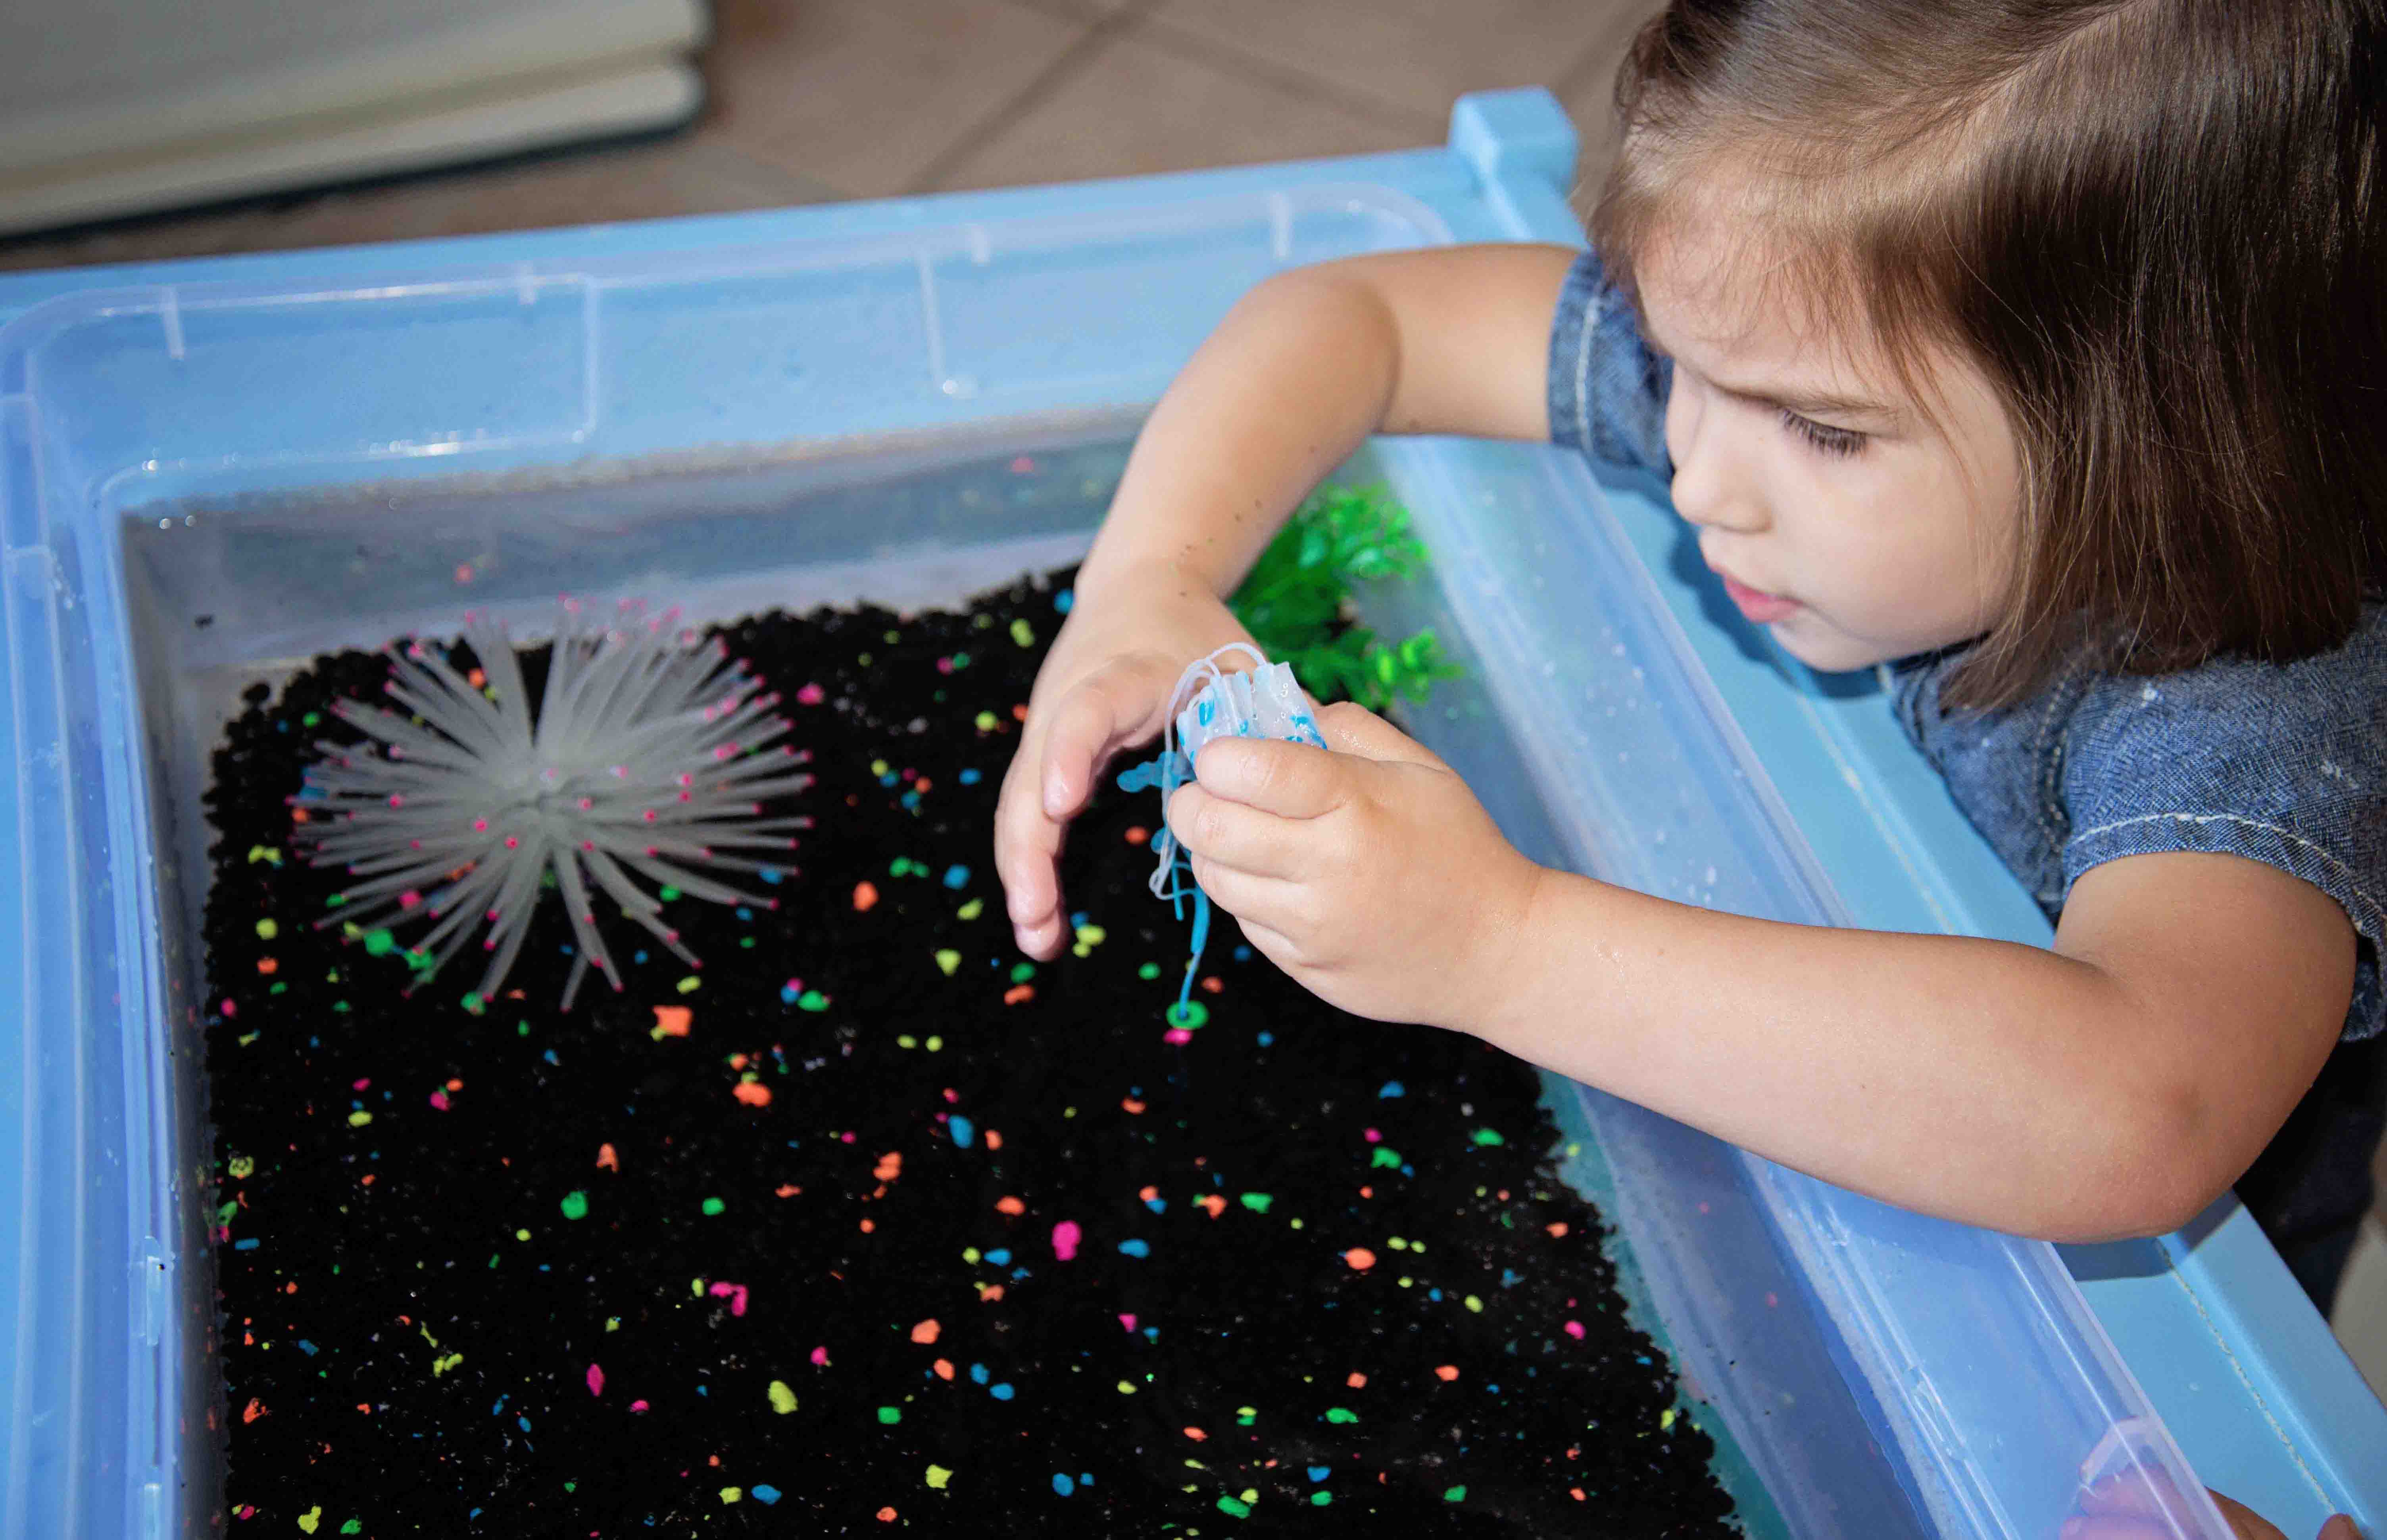 A glowing ocean sensory bin with a realistic anemone, jellyfish and swimming clownfish from Babes in Deutschland